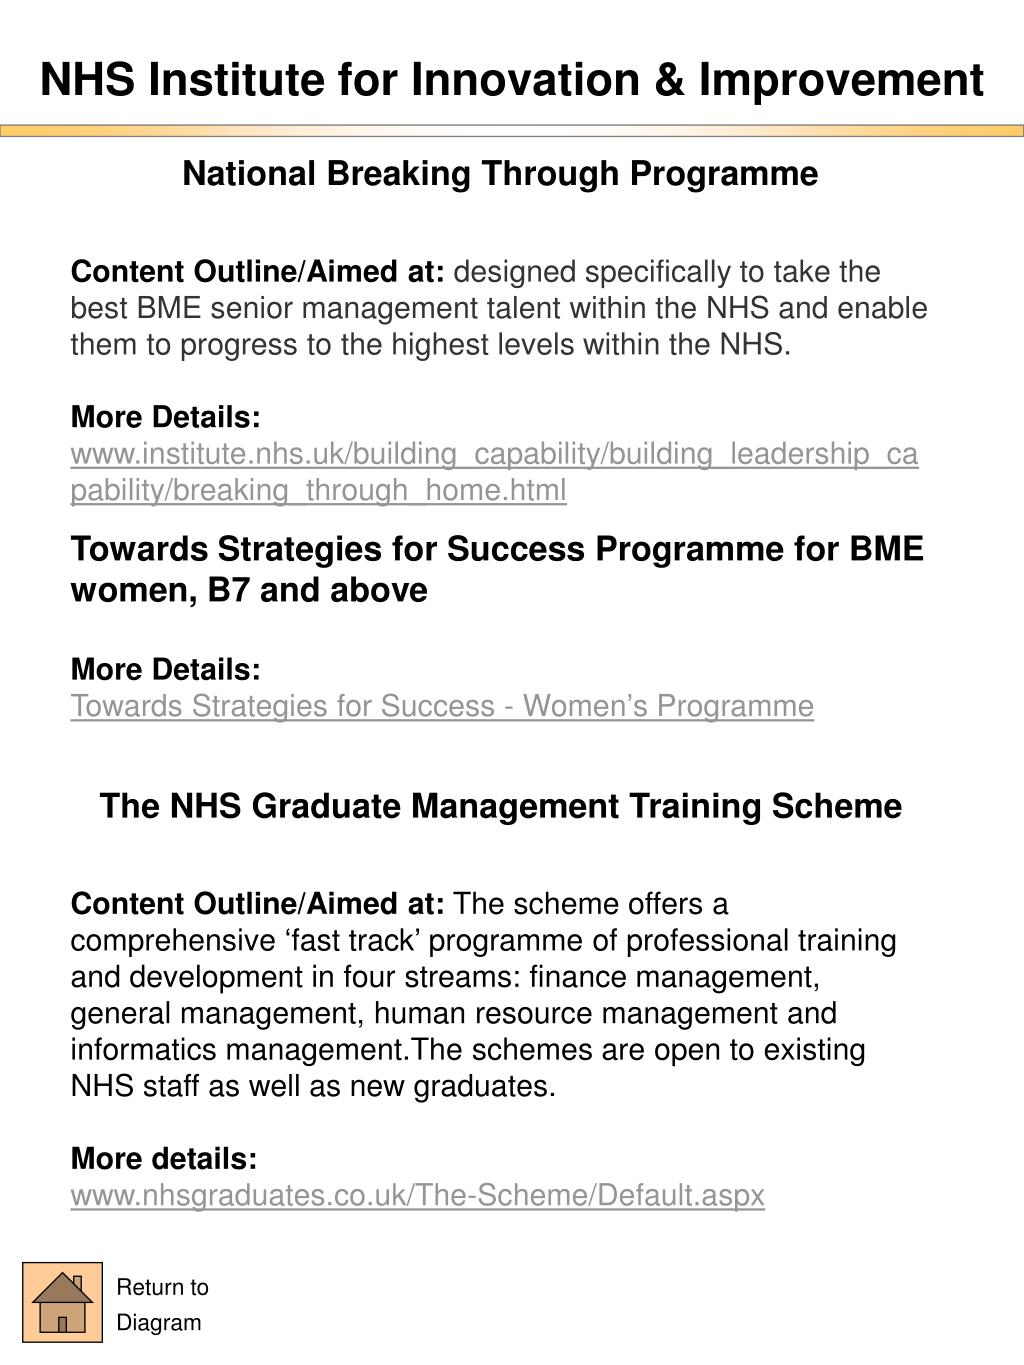 NHS Institute for Innovation & Improvement